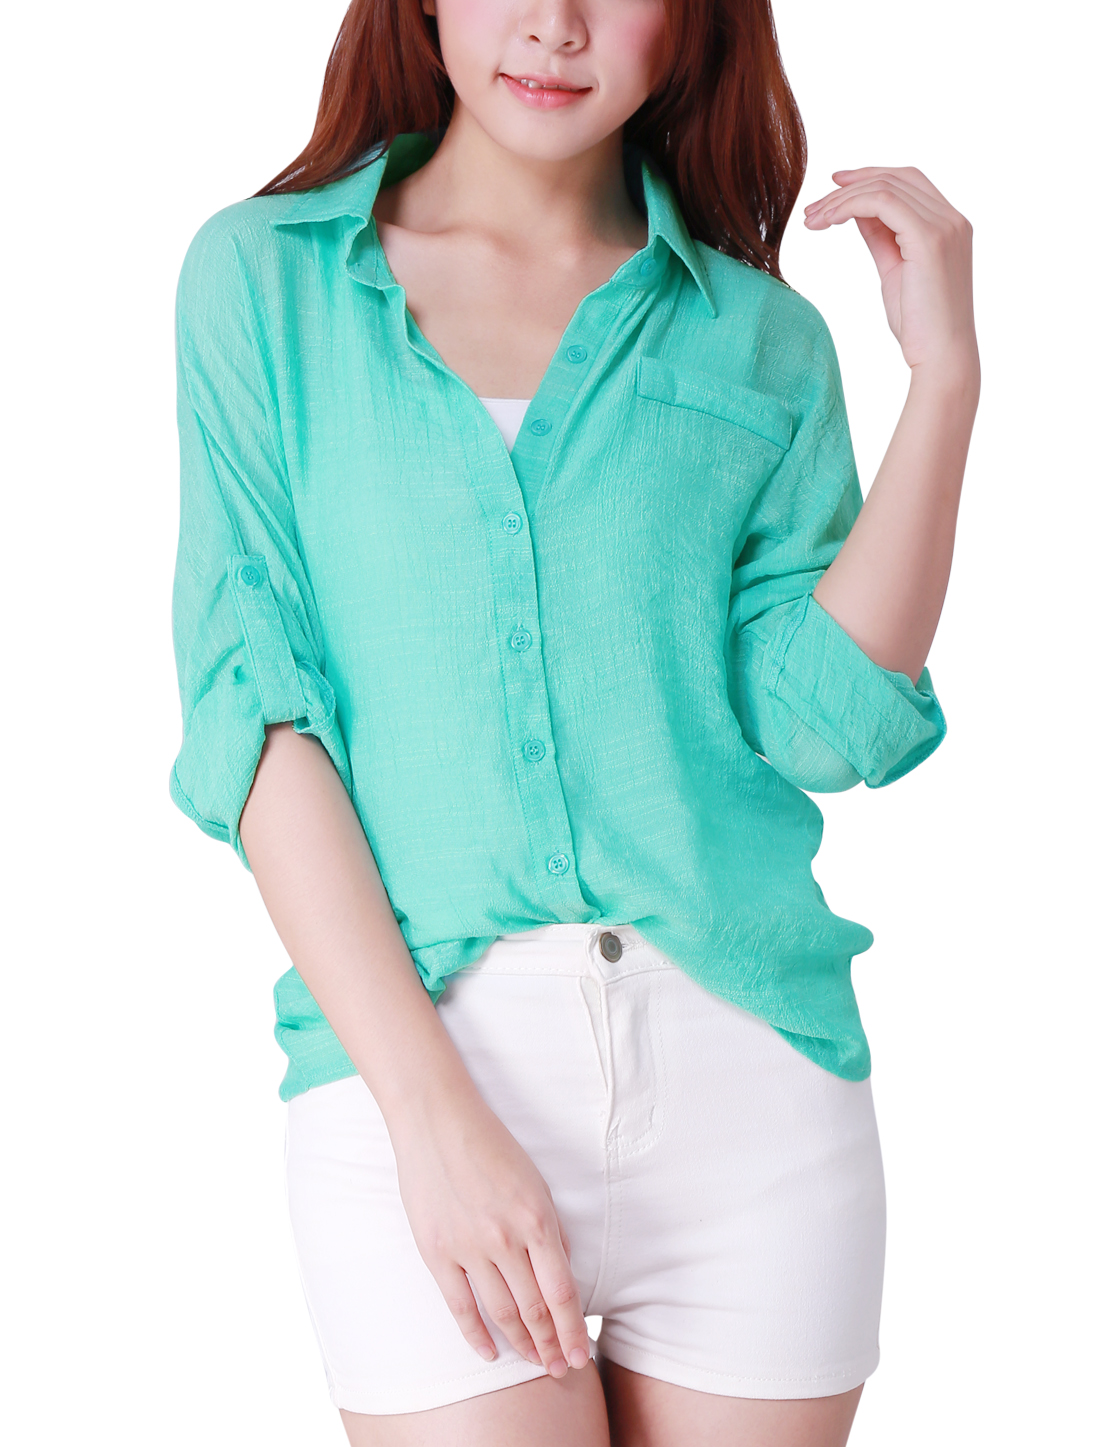 Lady Mint Color Single Breasted Rolled Up Sleeve Semi Sheer Point Collar Shirt XS